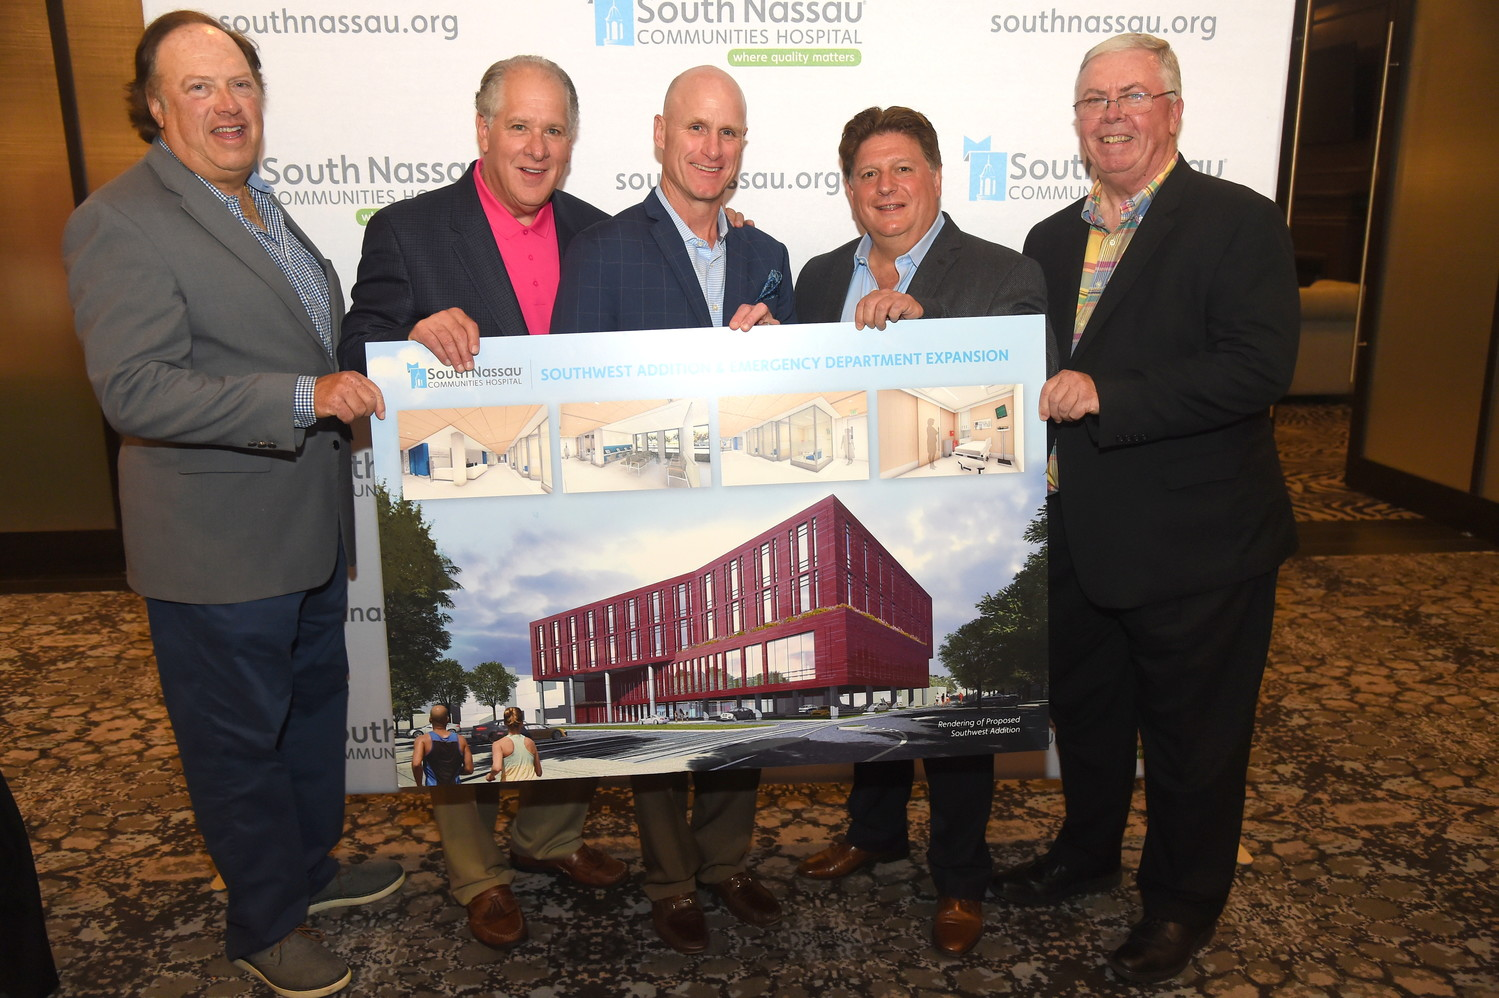 Golf outing co-chairs Jeff Greenfield, left, Tony Cancellieri, honorees Matt Whalen and Joel Schneider and South Nassau president and CEO Richard Murphy with a rendering of the hospital's upcoming southwest addition.